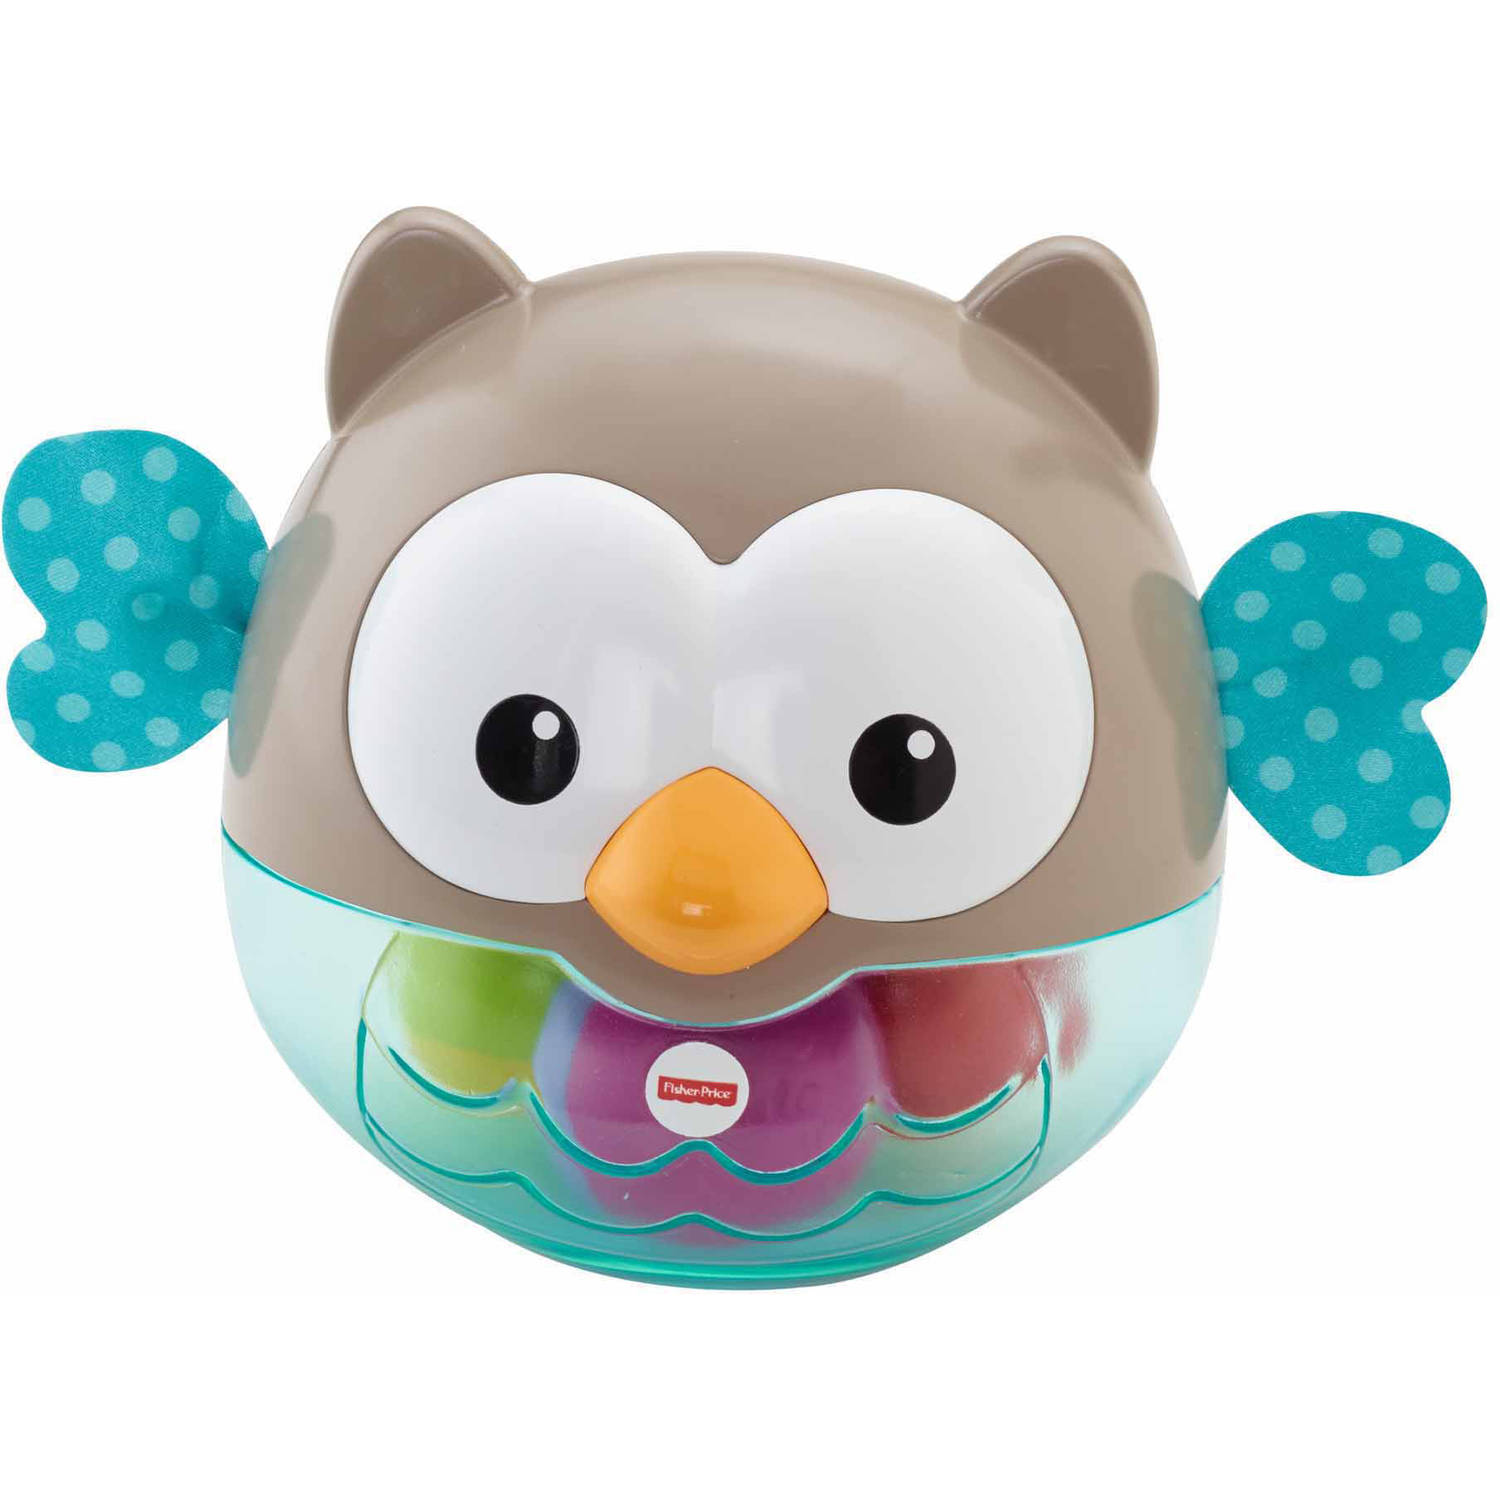 Fisher Price 2-in-1 Activity Chime Ball by Fisher-Price